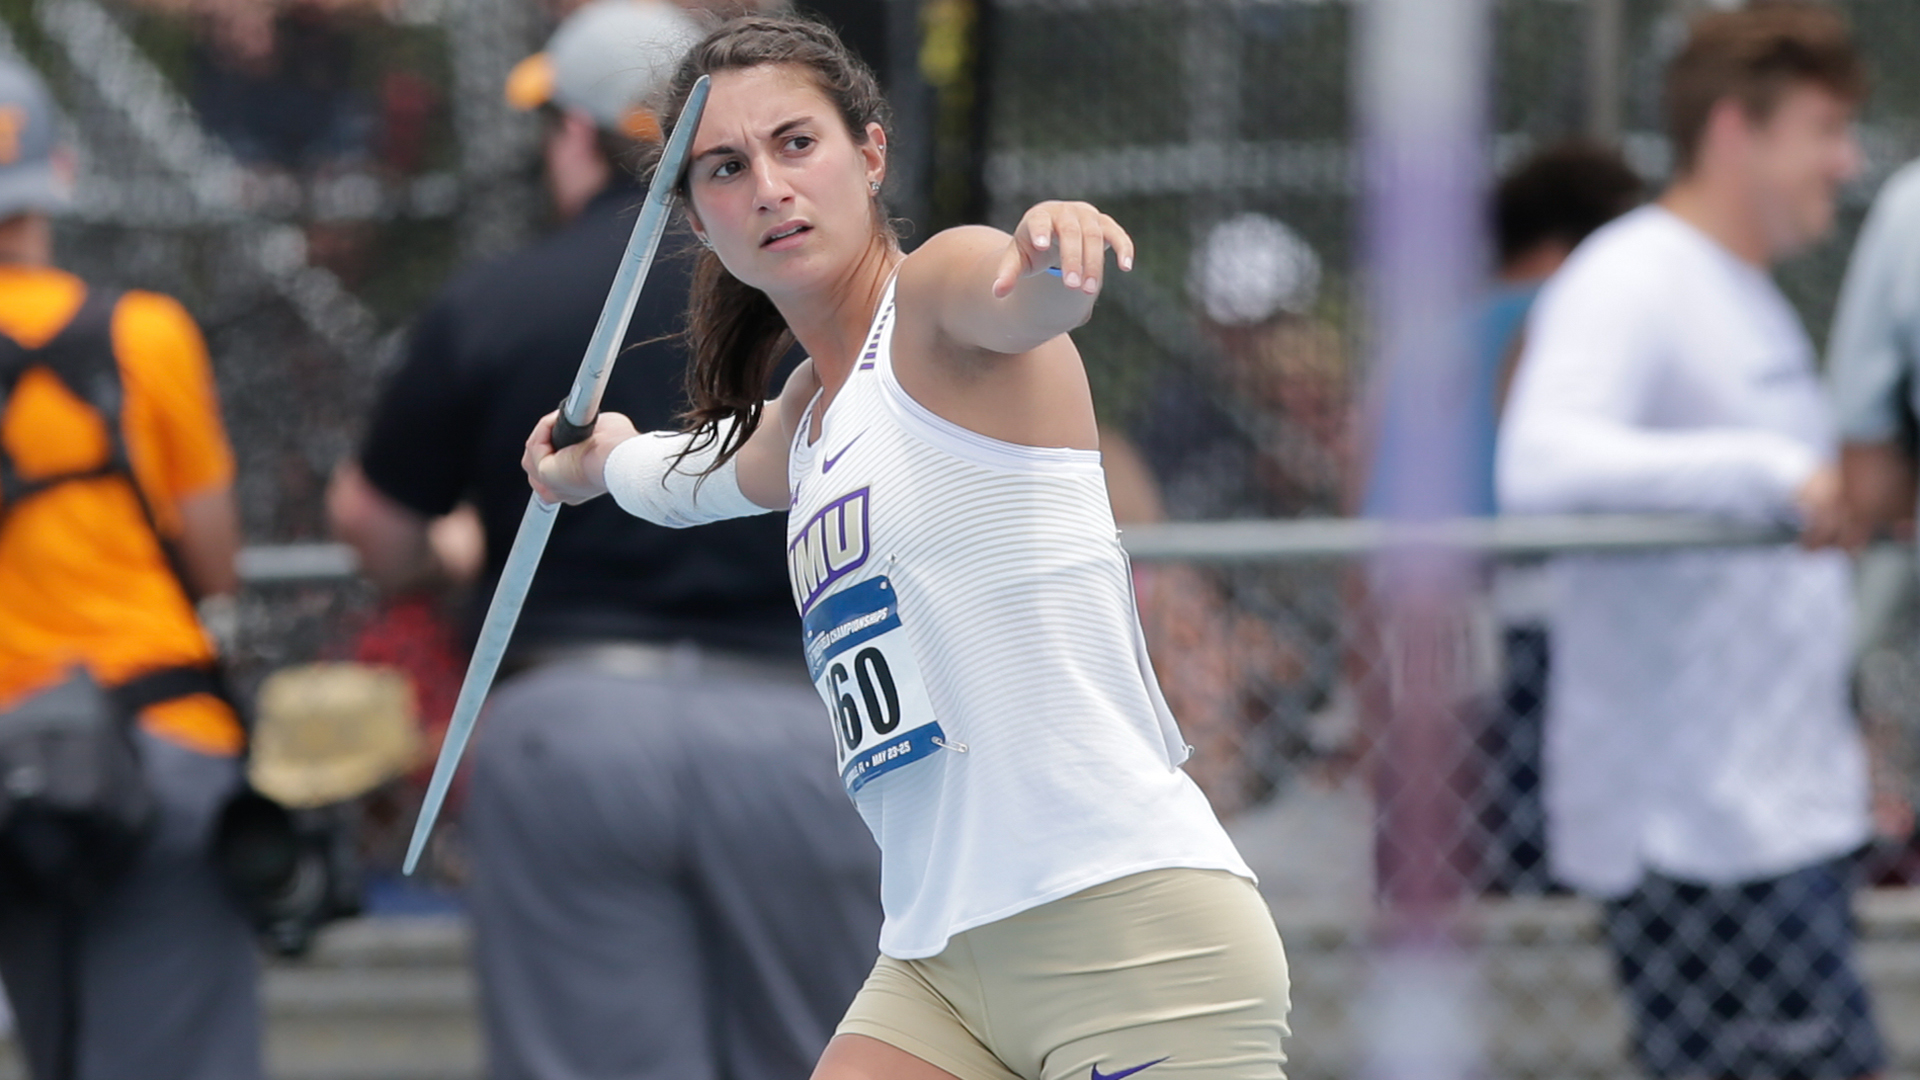 Track & Field: Serratore Competes At NCAA East Prelims